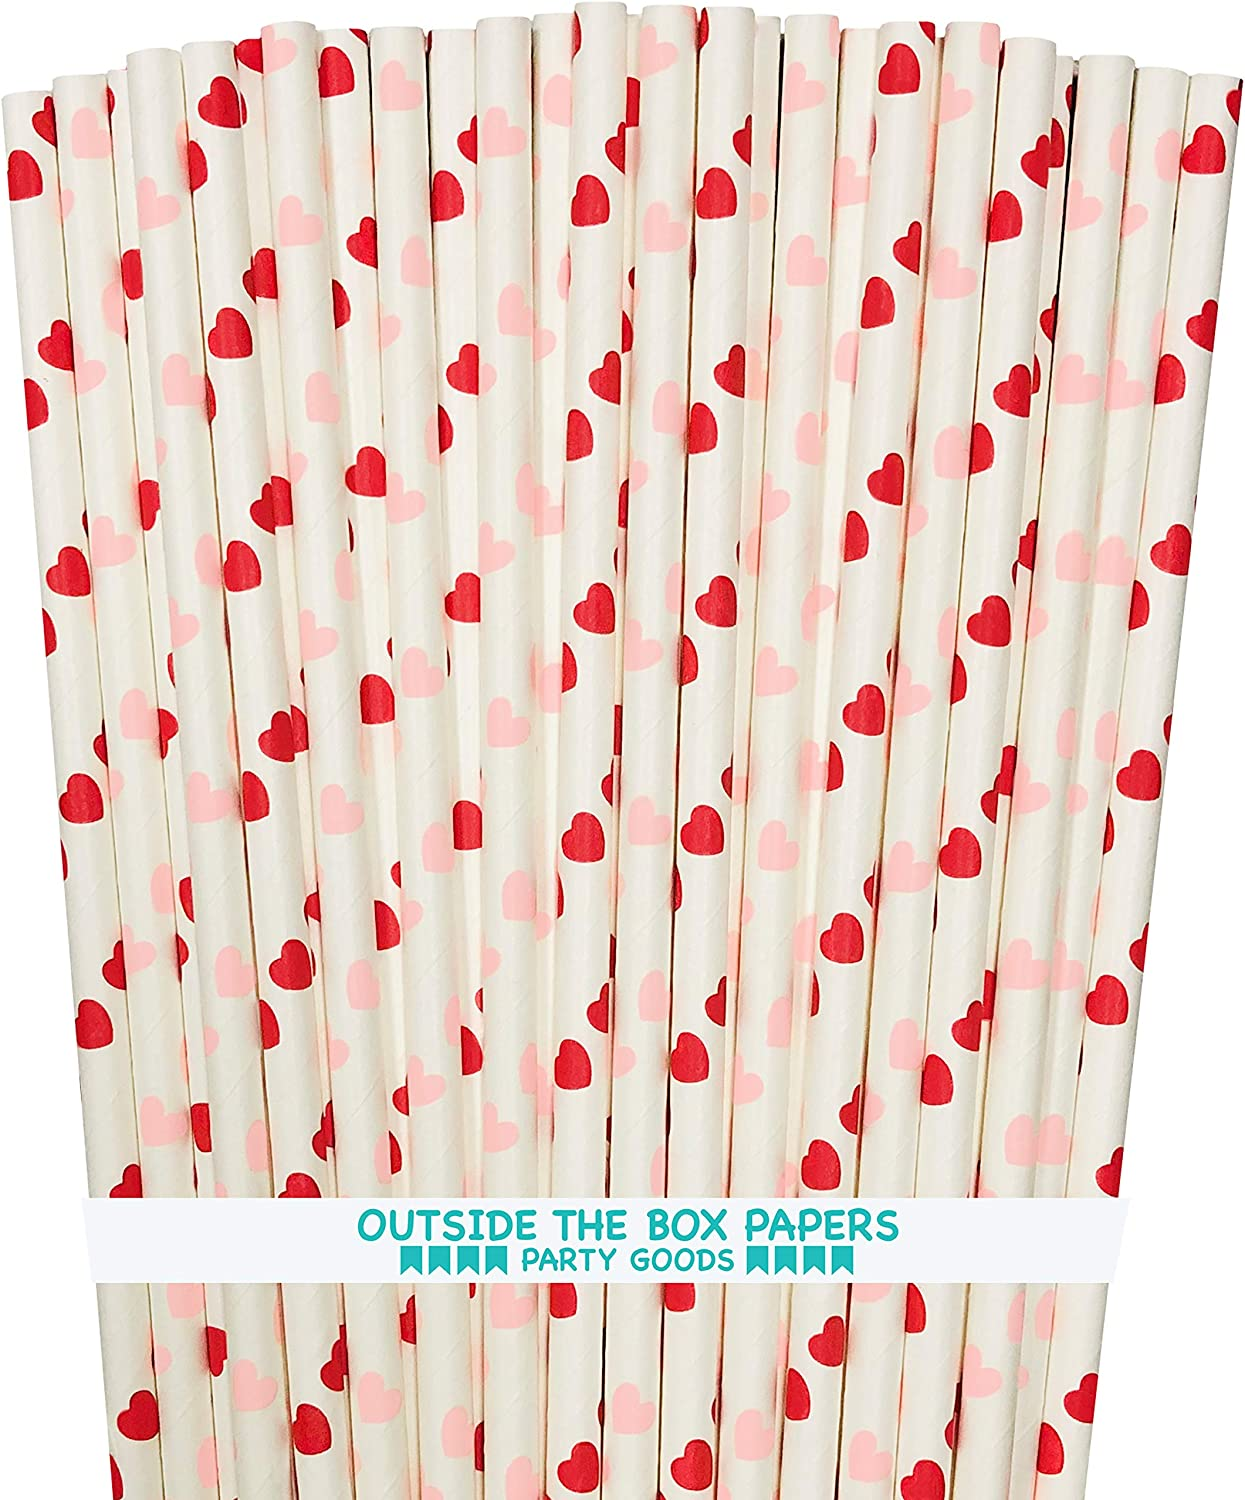 100 Pack Outside the Box Papers Brand Red and White Valentine Paper Drinking Straws 7.75 Inches Stripe Chevron Polka Dot